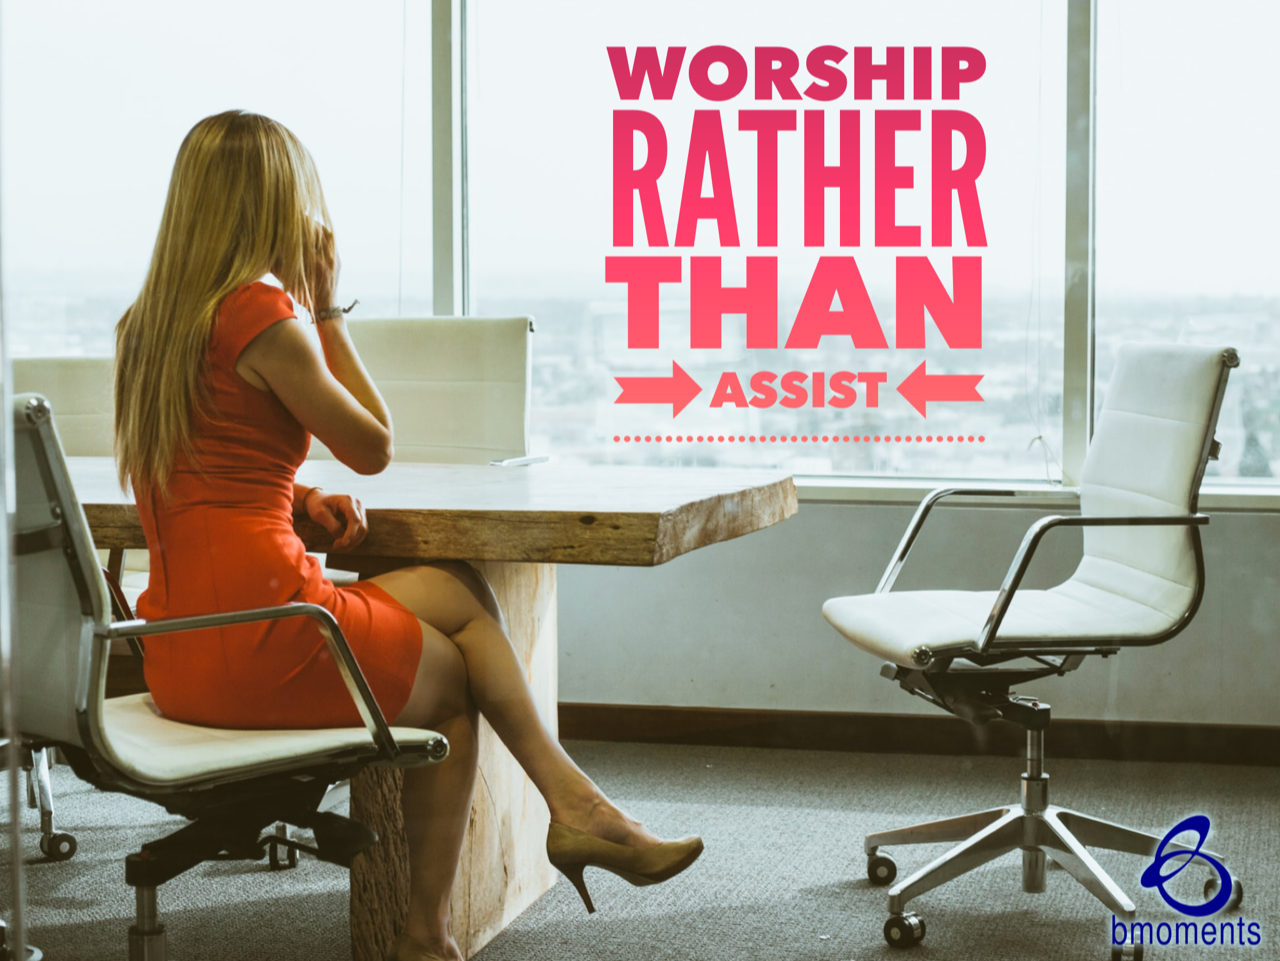 God Longs for Worshipers—Not Executive Assistants